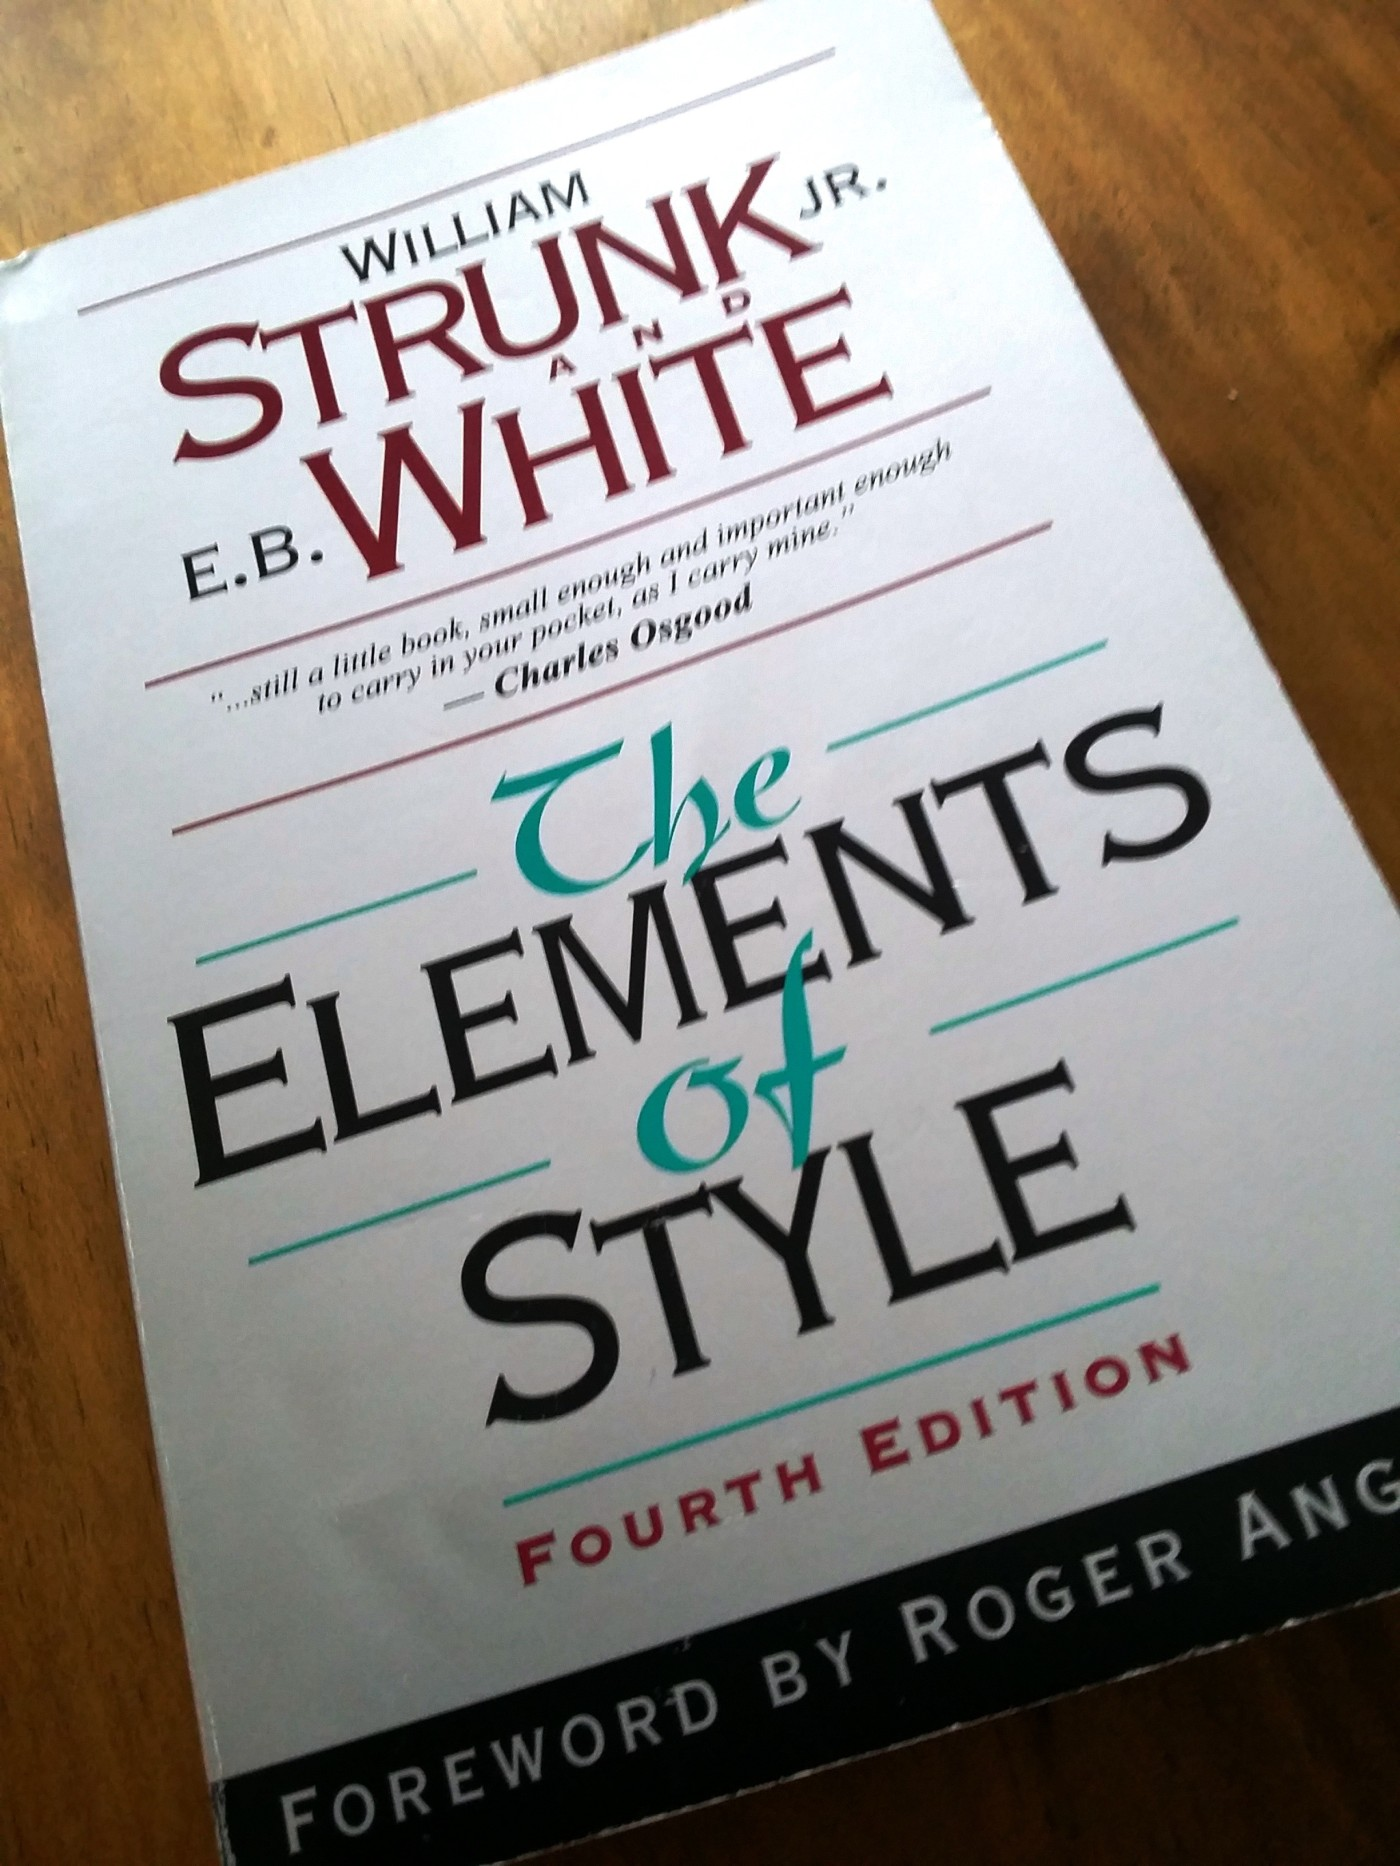 Struck and White's The Elements of Style